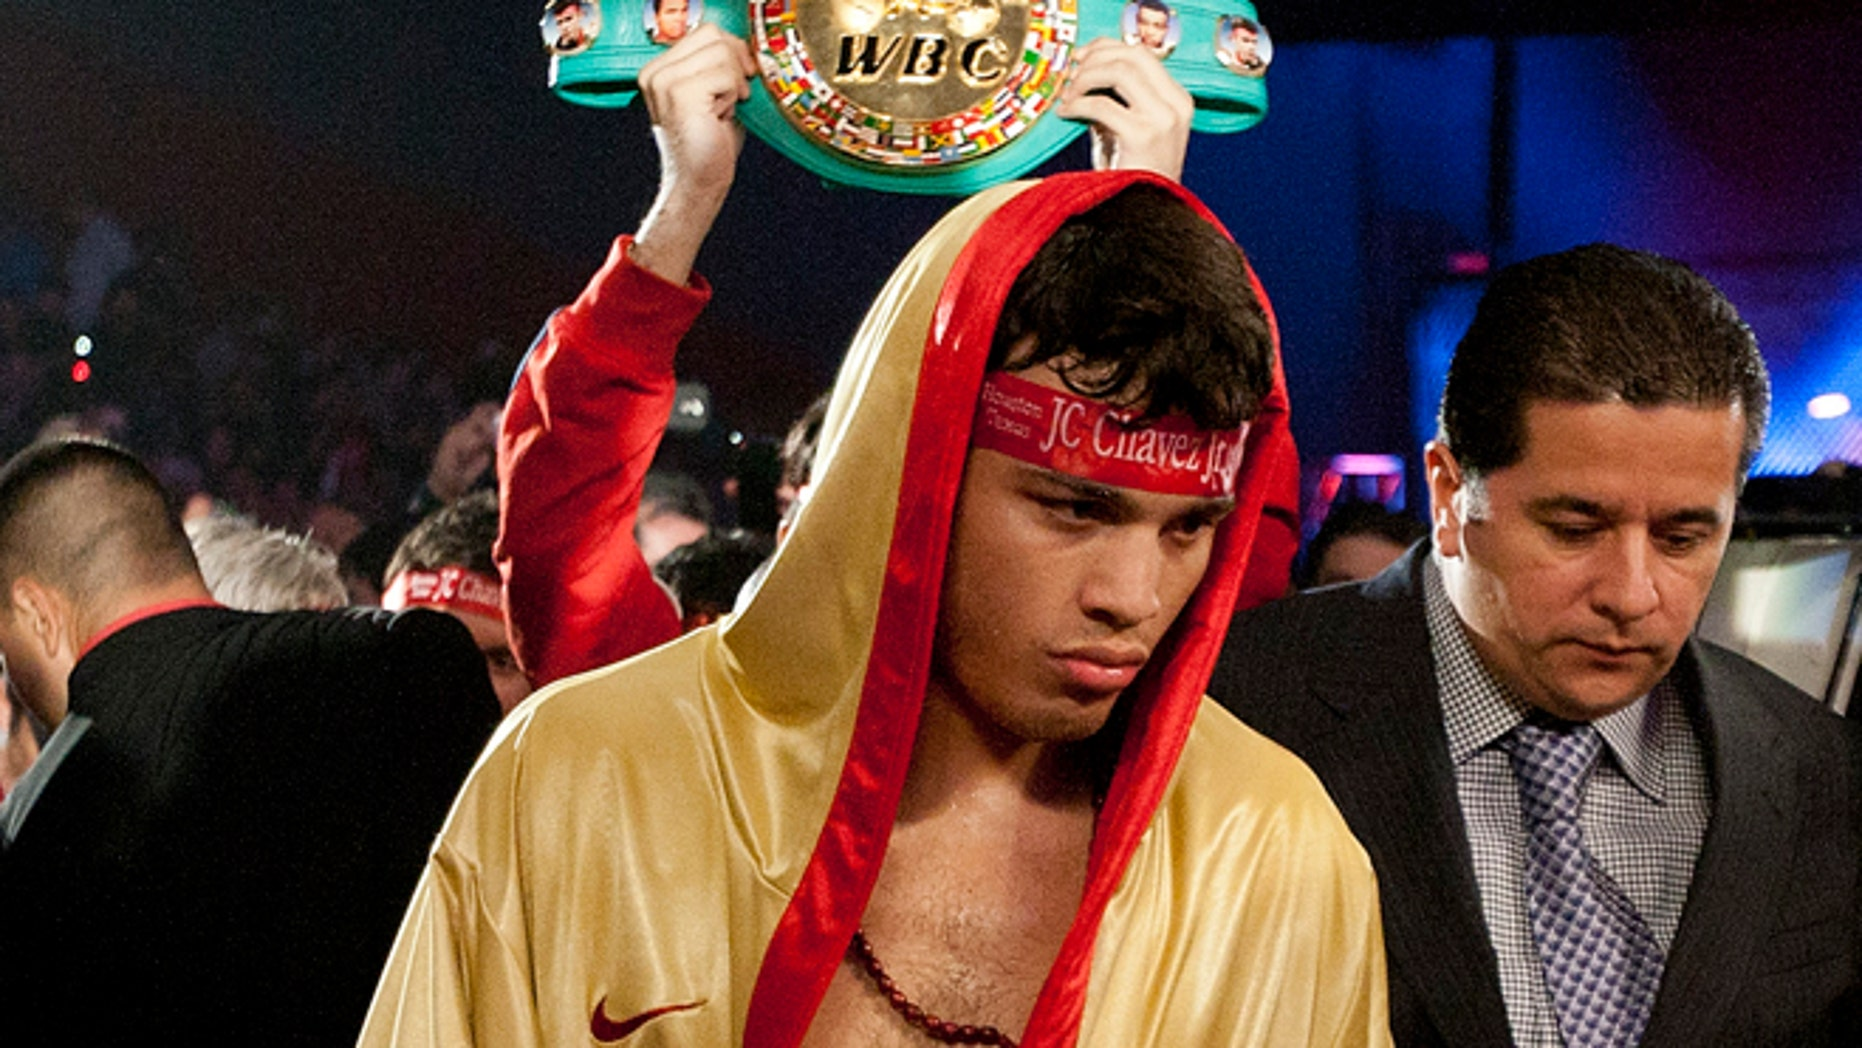 HOUSTON - NOVEMBER 19:  World Middleweight Champion Julio Chavez Jr. makes his way to the ring to defend his belt against Peter Manfredo Jr. at Reliant Arena at Reliant Park on November 19, 2011 in Houston, Texas.  (Photo by Bob Levey/Getty Images)